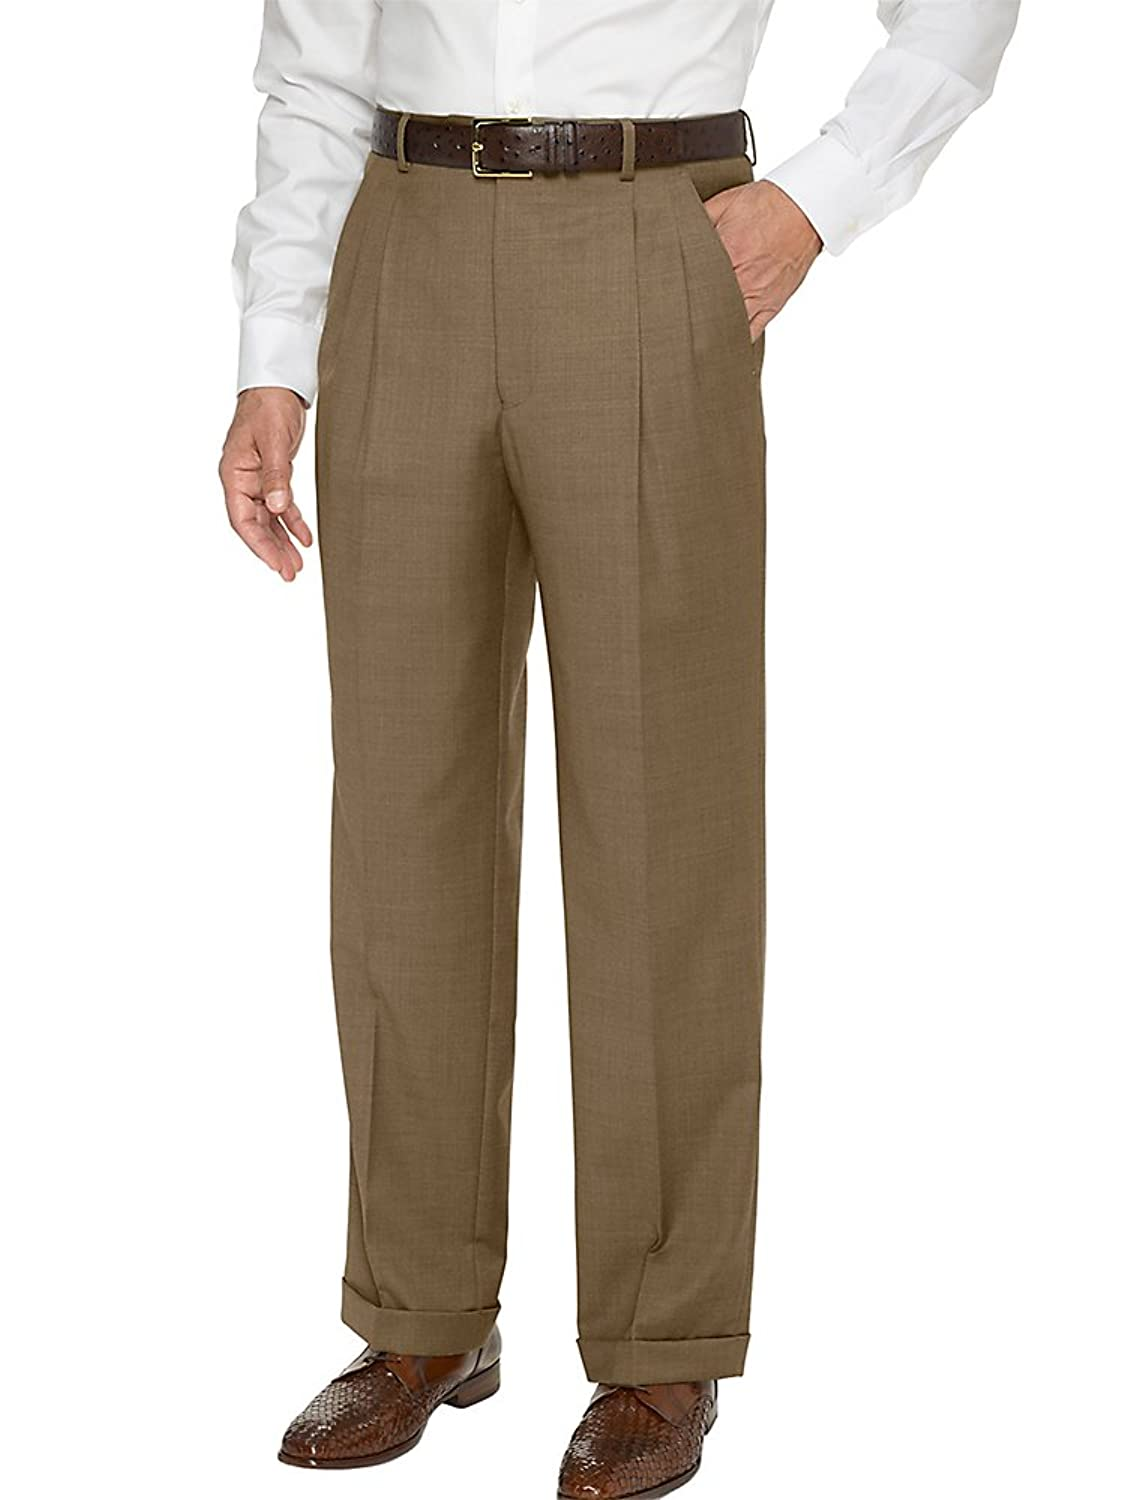 1940s Trousers, Mens Wide Leg Pants Paul Fredrick Mens Super 120s Sharkskin Pleated Pants $99.95 AT vintagedancer.com